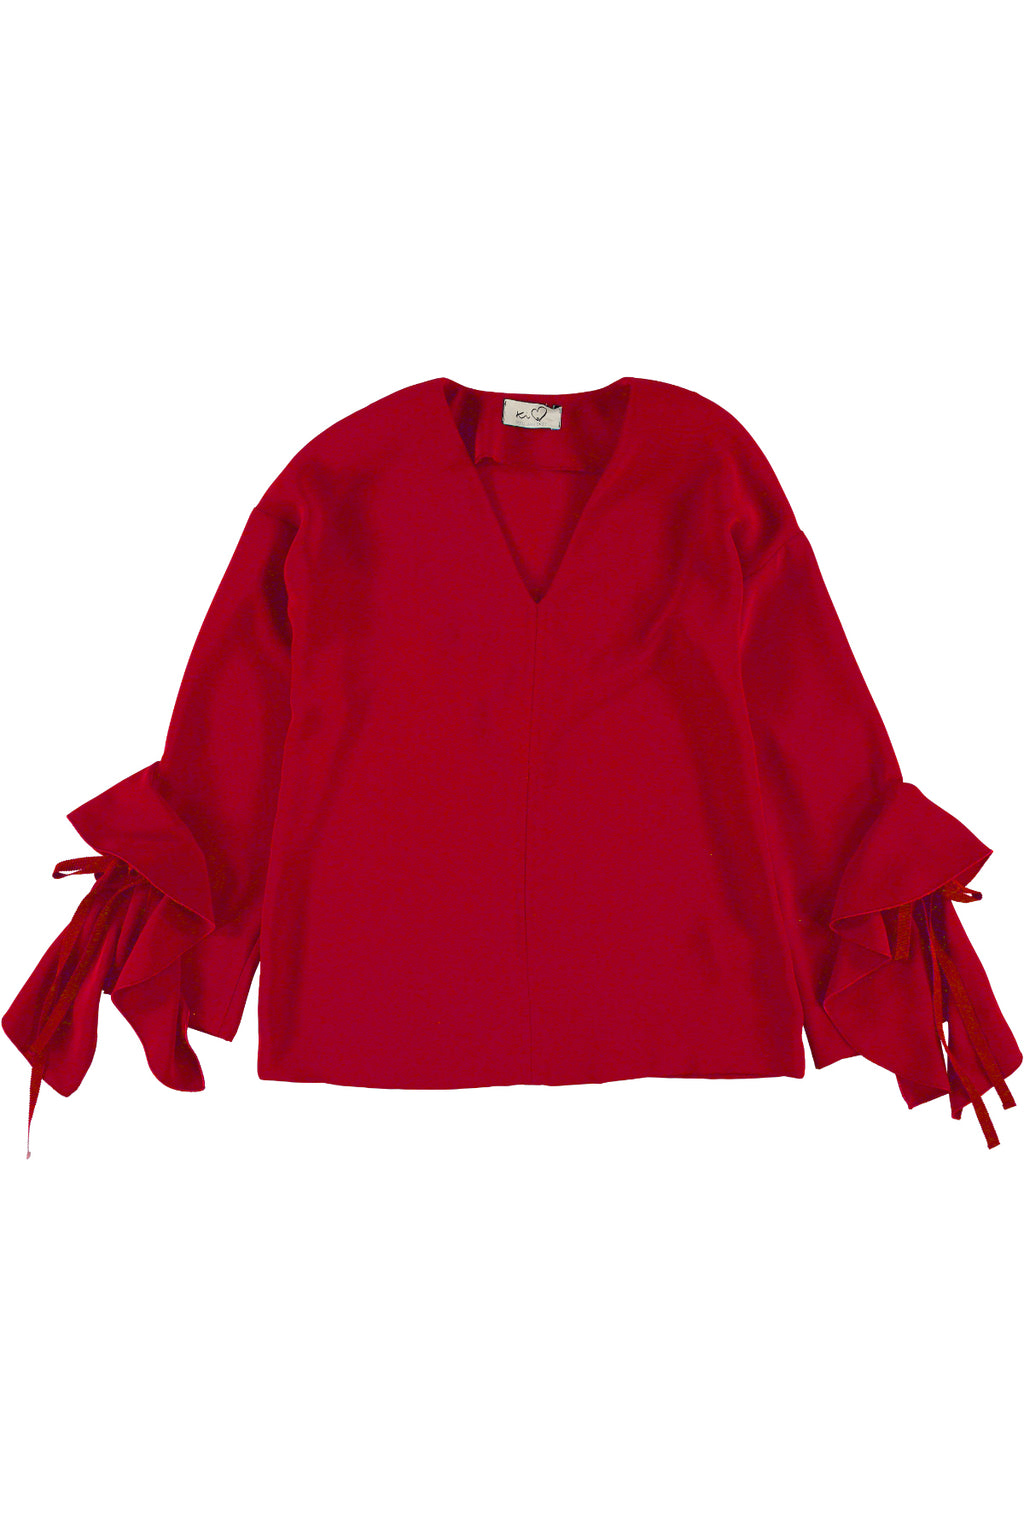 blusa_rosso_carminio_8CM56_front-ki6_who_are_you